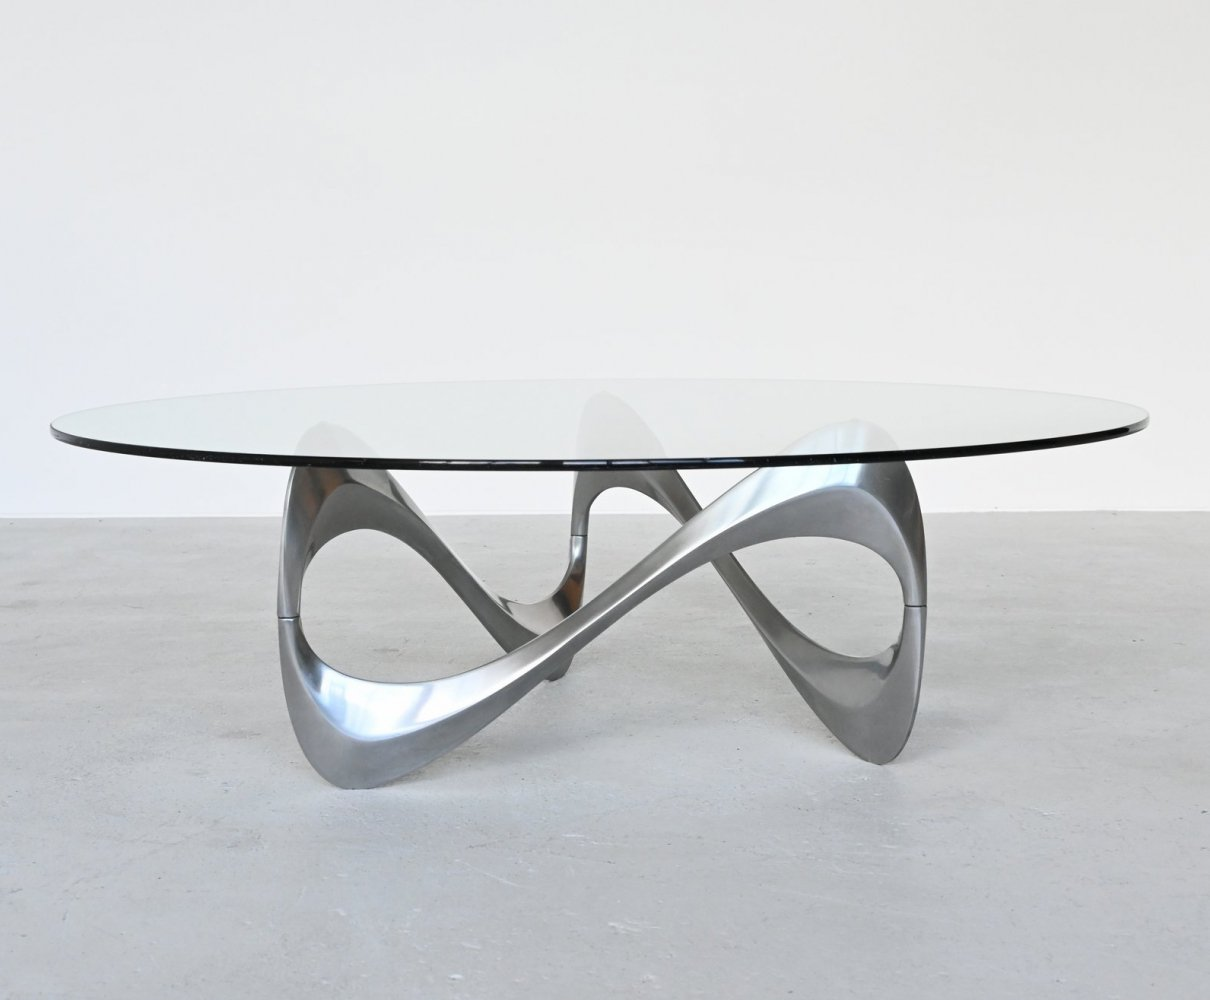 Knut Hesterberg Snake coffee table by Ronald Schmitt, Germany 1965